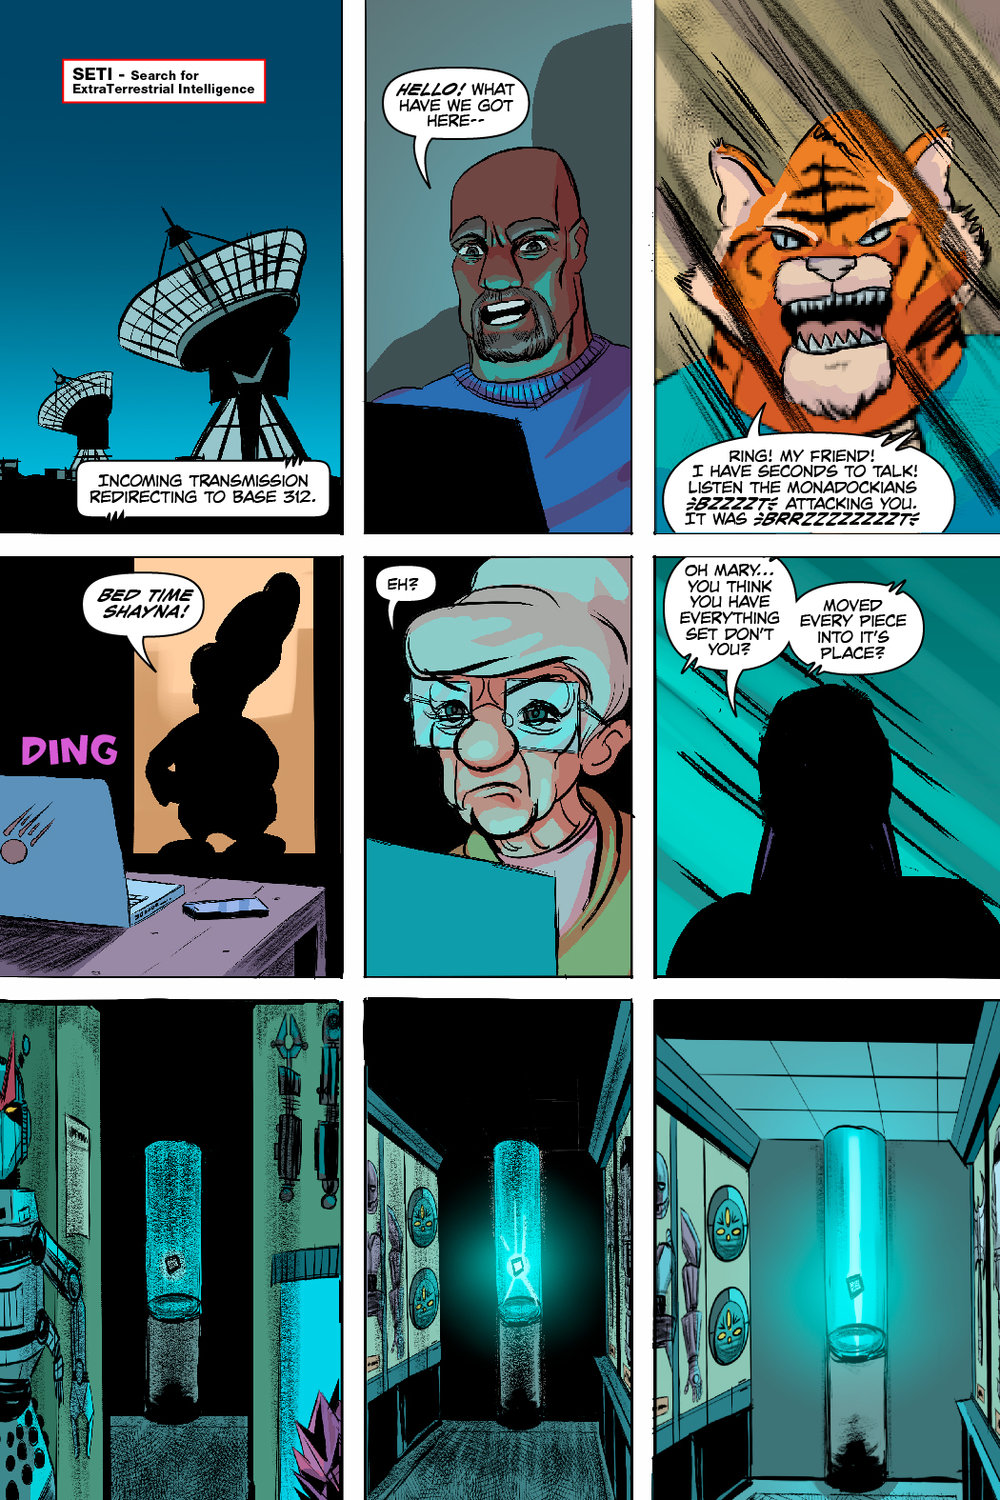 PAGE 100 Panel 1-3 Mood Ring and Tigron 1 CAP: SETI - search for extraterrestrial intelligence SETI Incoming transmission redirecting to Base 312. MOOD RING: Hello! What have we got here-- TIGRON: (insert BZZZZZT at crucial points ) Ring! My friend! I have seconds to talk! Listen the Monadockians (were not) attacking you. It was (a false flag.) Panel 4- 6 Gram Gram and mysterious stranger GRAMGRAM: Bed time Shayna! SFX: DING! GRAMGRAM: Eh? MYSTERIOUS SHADOW: Oh Mary... you think you have everything set don't you? Moved every piece into it's place?